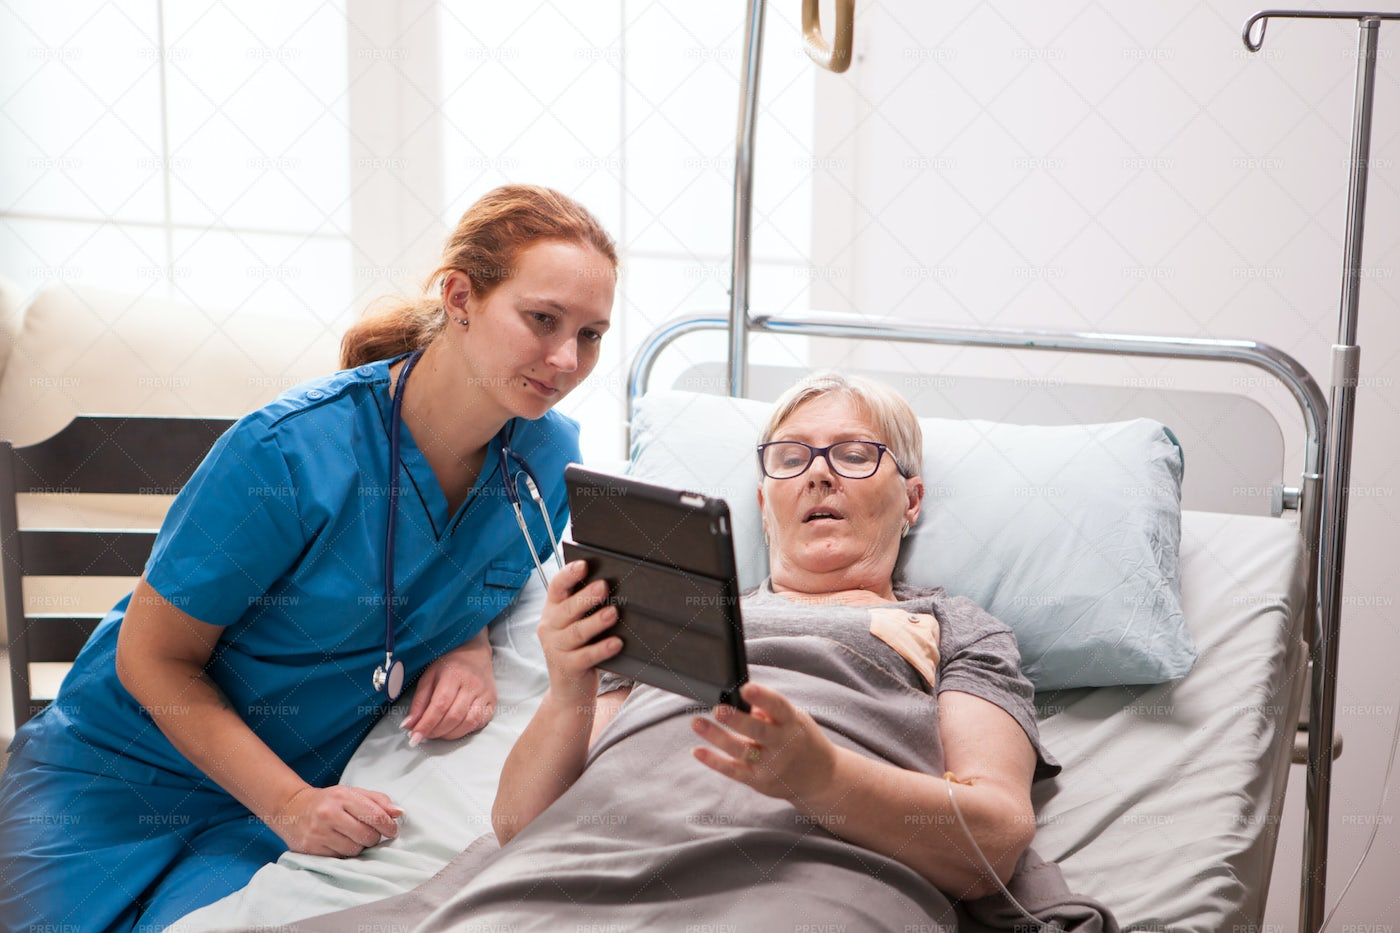 Portrait Of Old Woman In Nursing Home: Stock Photos